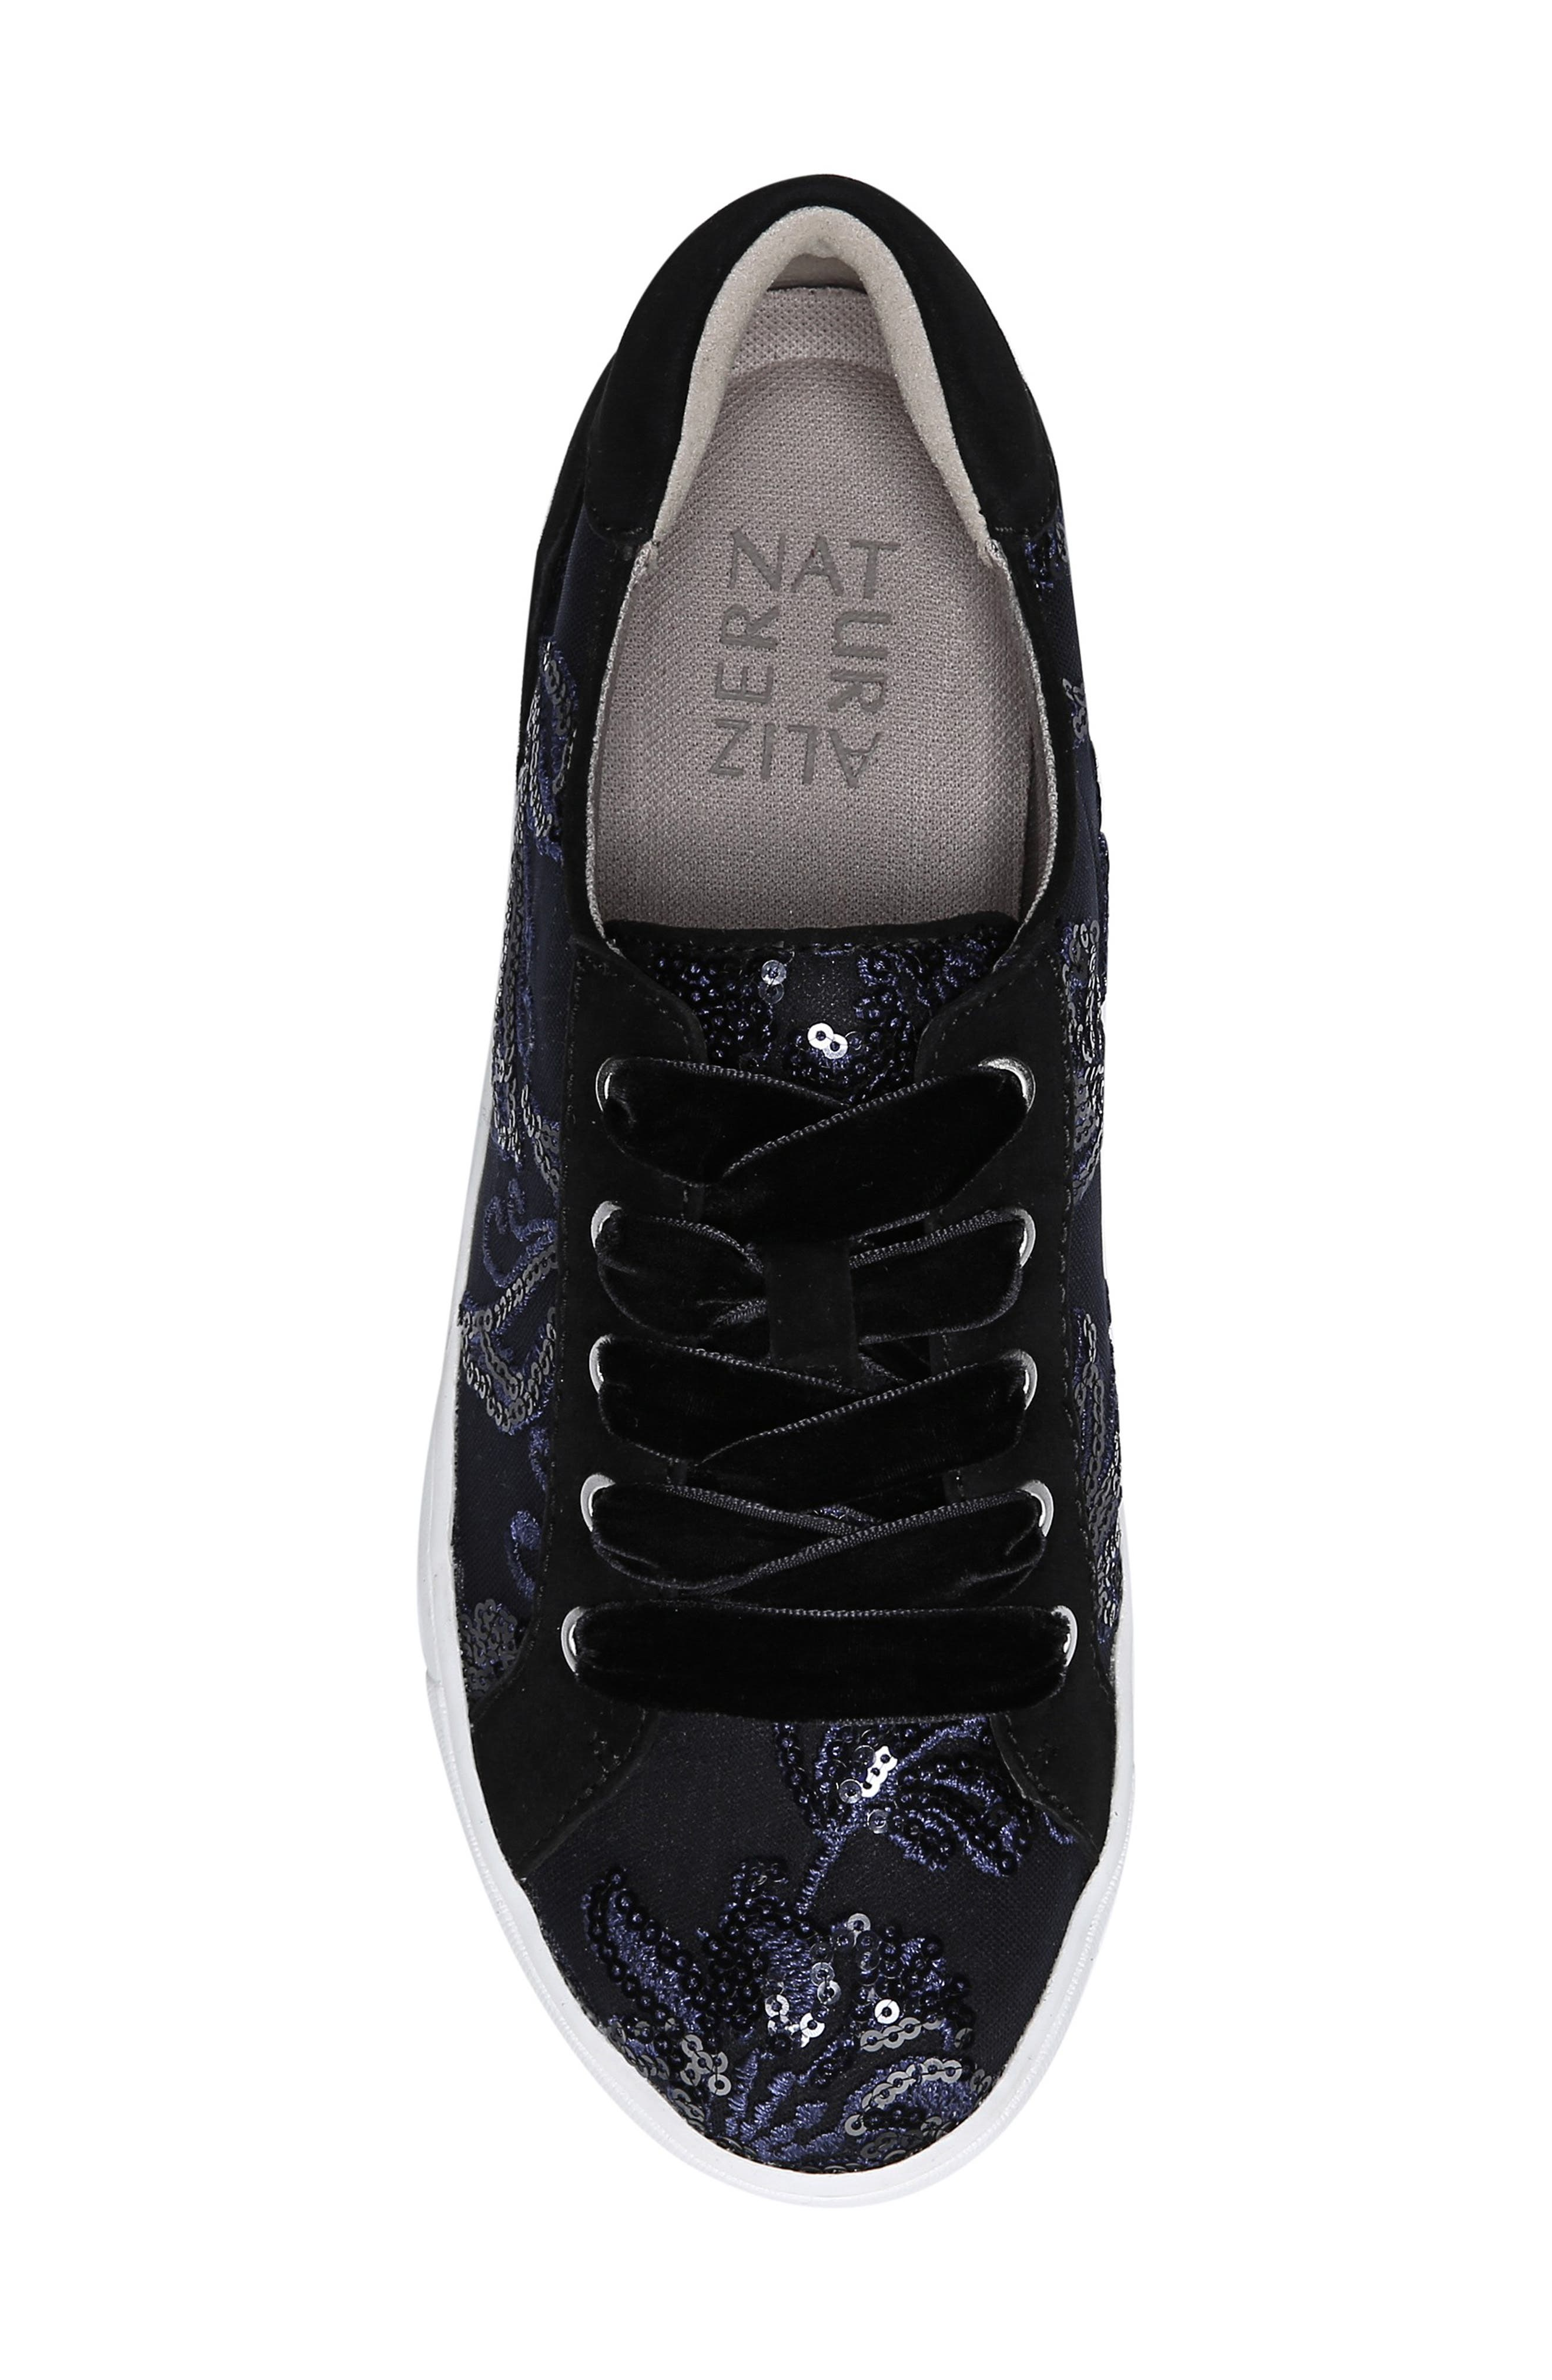 NATURALIZER, Morrison Sneaker, Alternate thumbnail 5, color, NAVY EMBROIDERED LACE